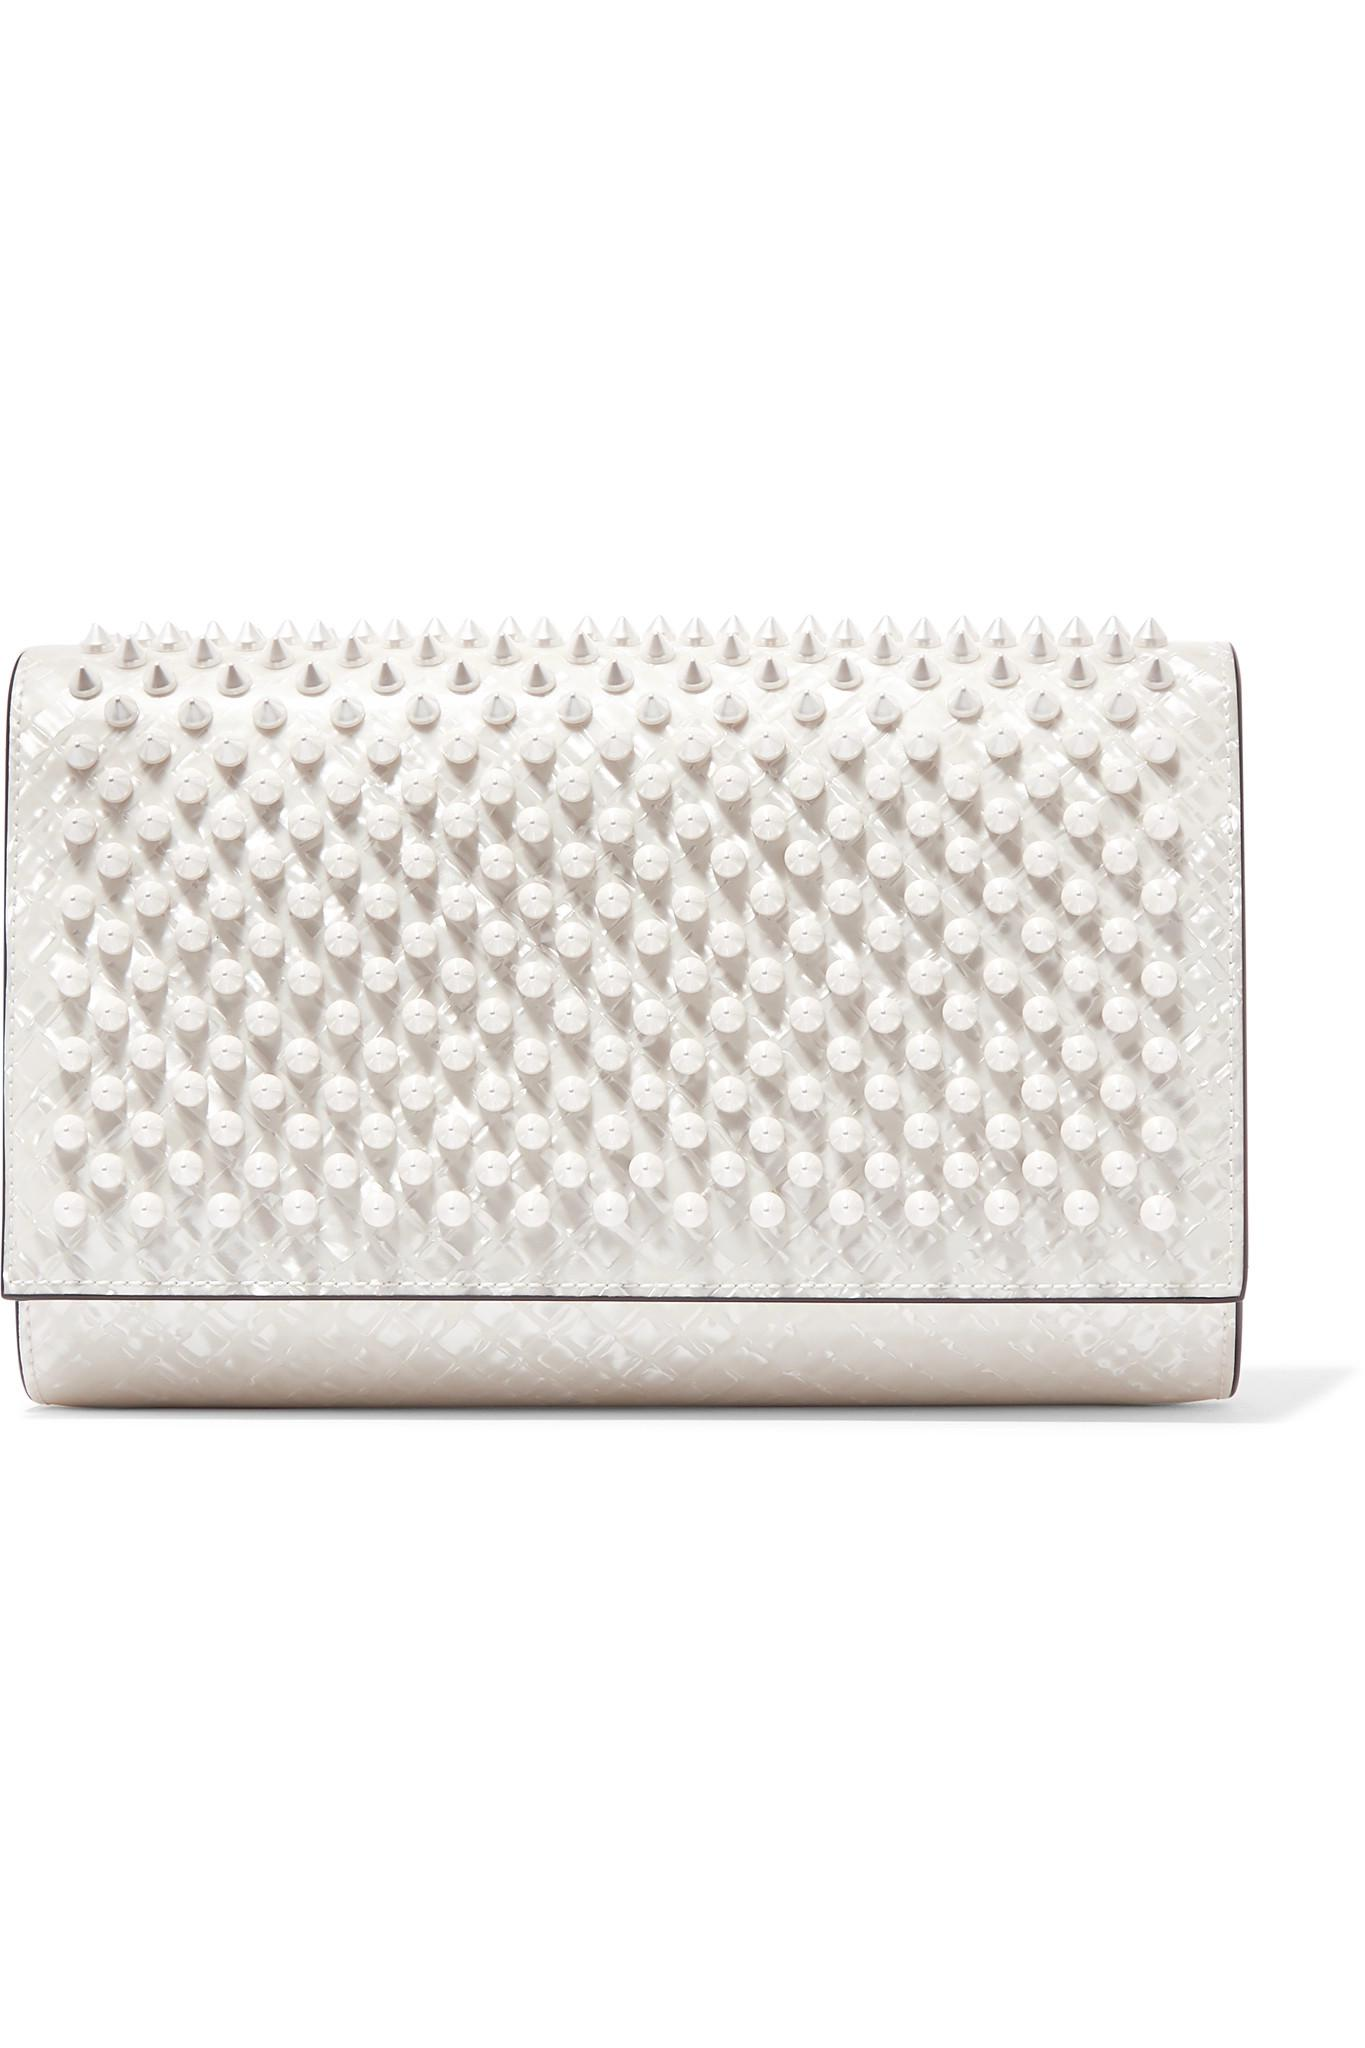 7dd1f0e024 Christian Louboutin Paloma Spiked Patent-leather Clutch in White - Lyst